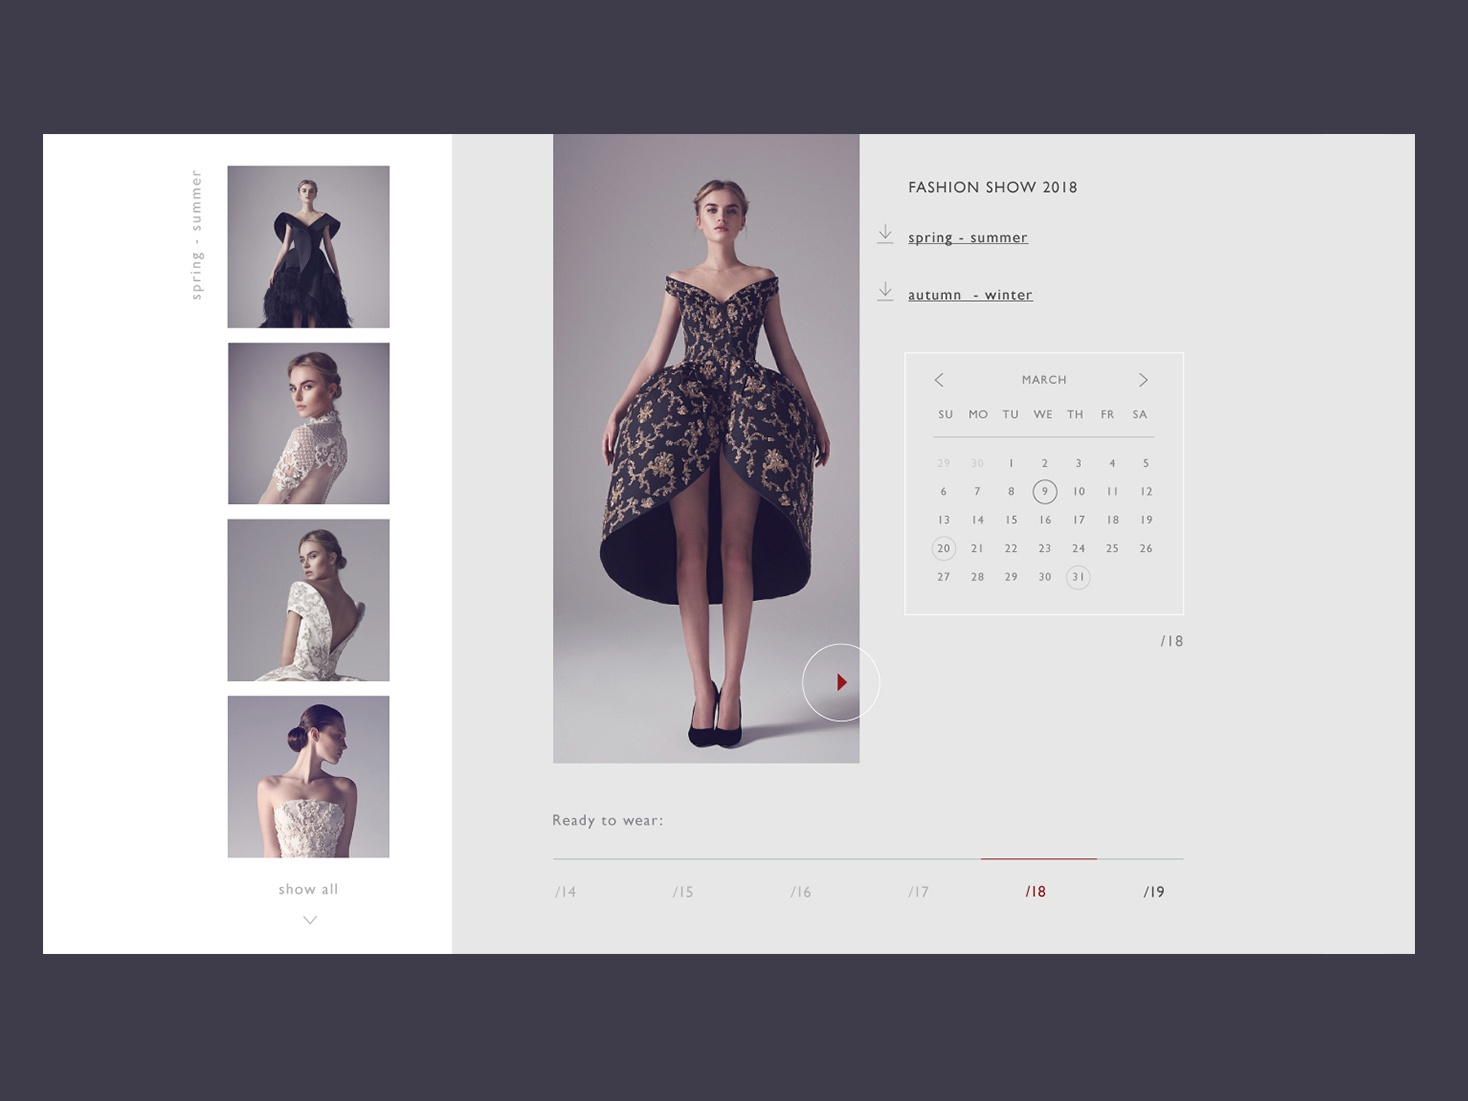 one of the pages of the clothing designer website collection fashion show event calendar branding website ux ui landing page landing flat fashion exclusive dress adaptive web app adobe dribbble design